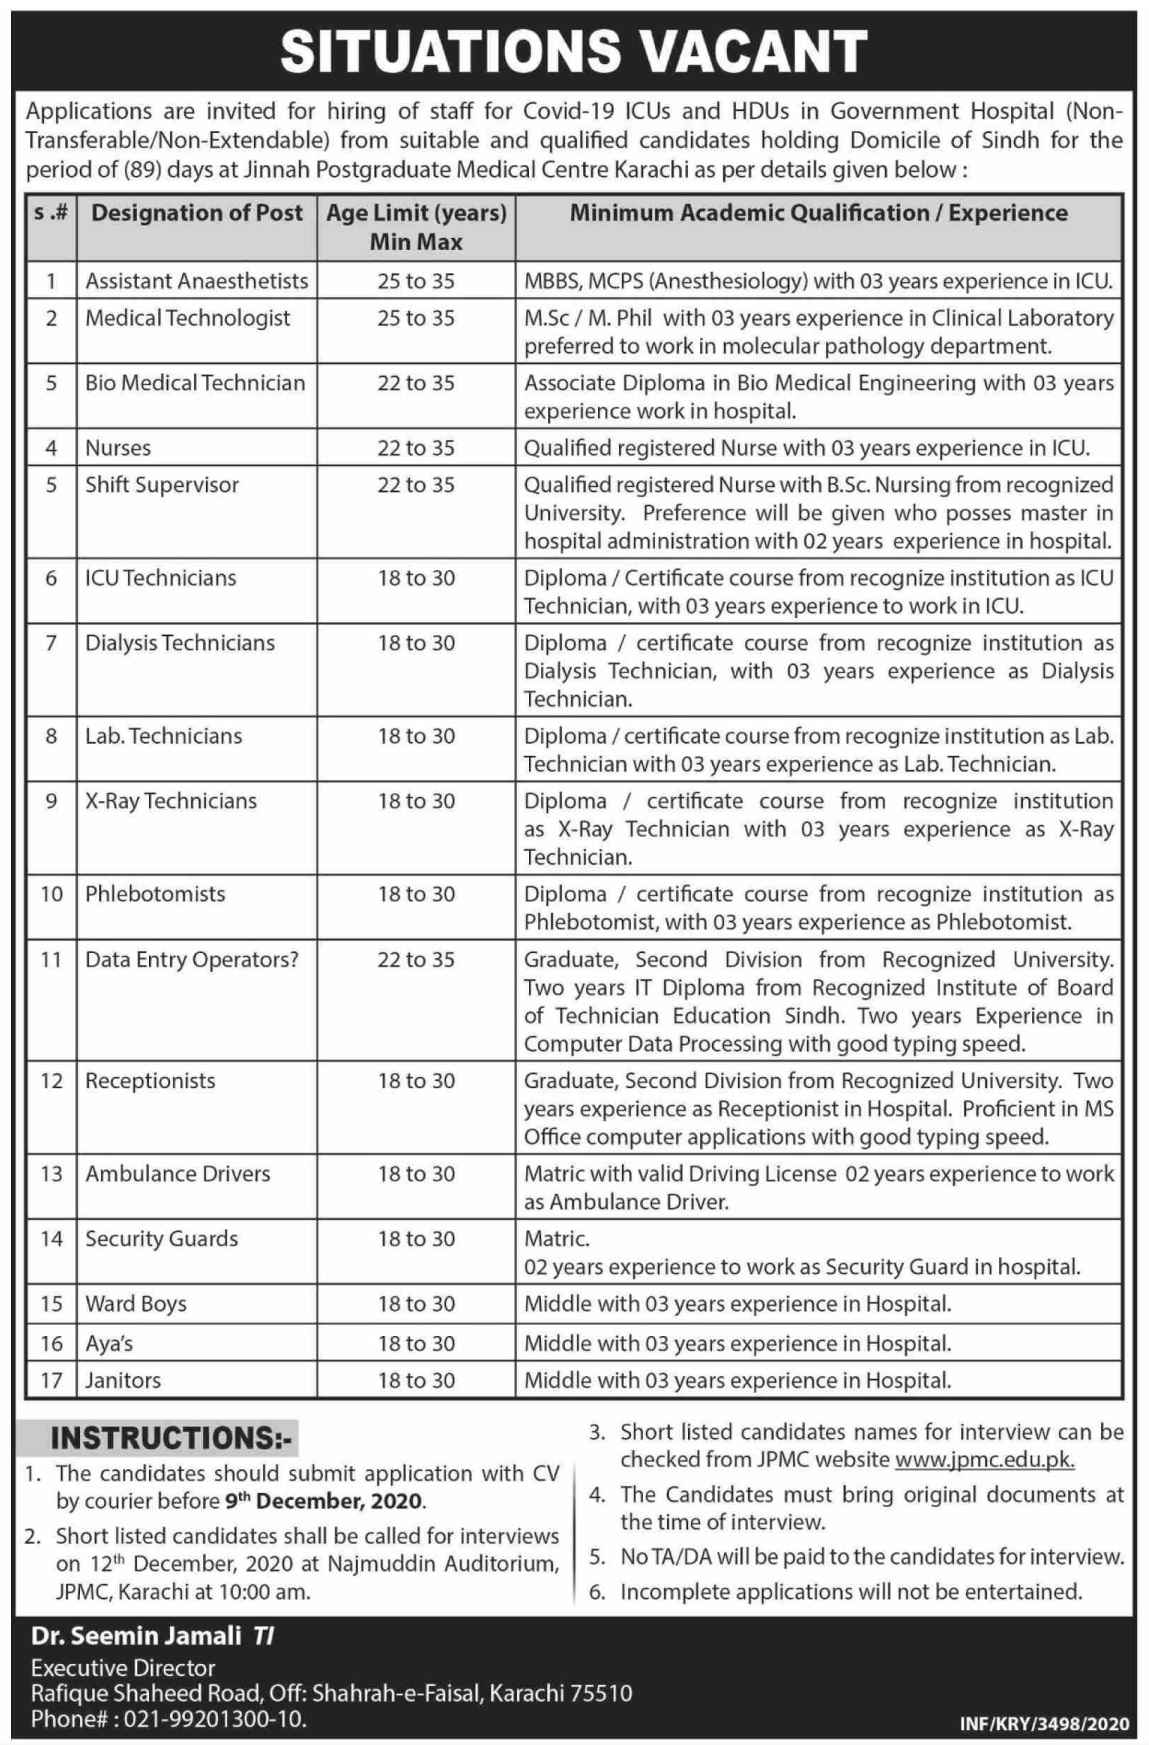 Jinnah Postgraduate Medical Centre JPMC Karachi Jobs 2020 for COVID-19 | Only Sindh Domicile